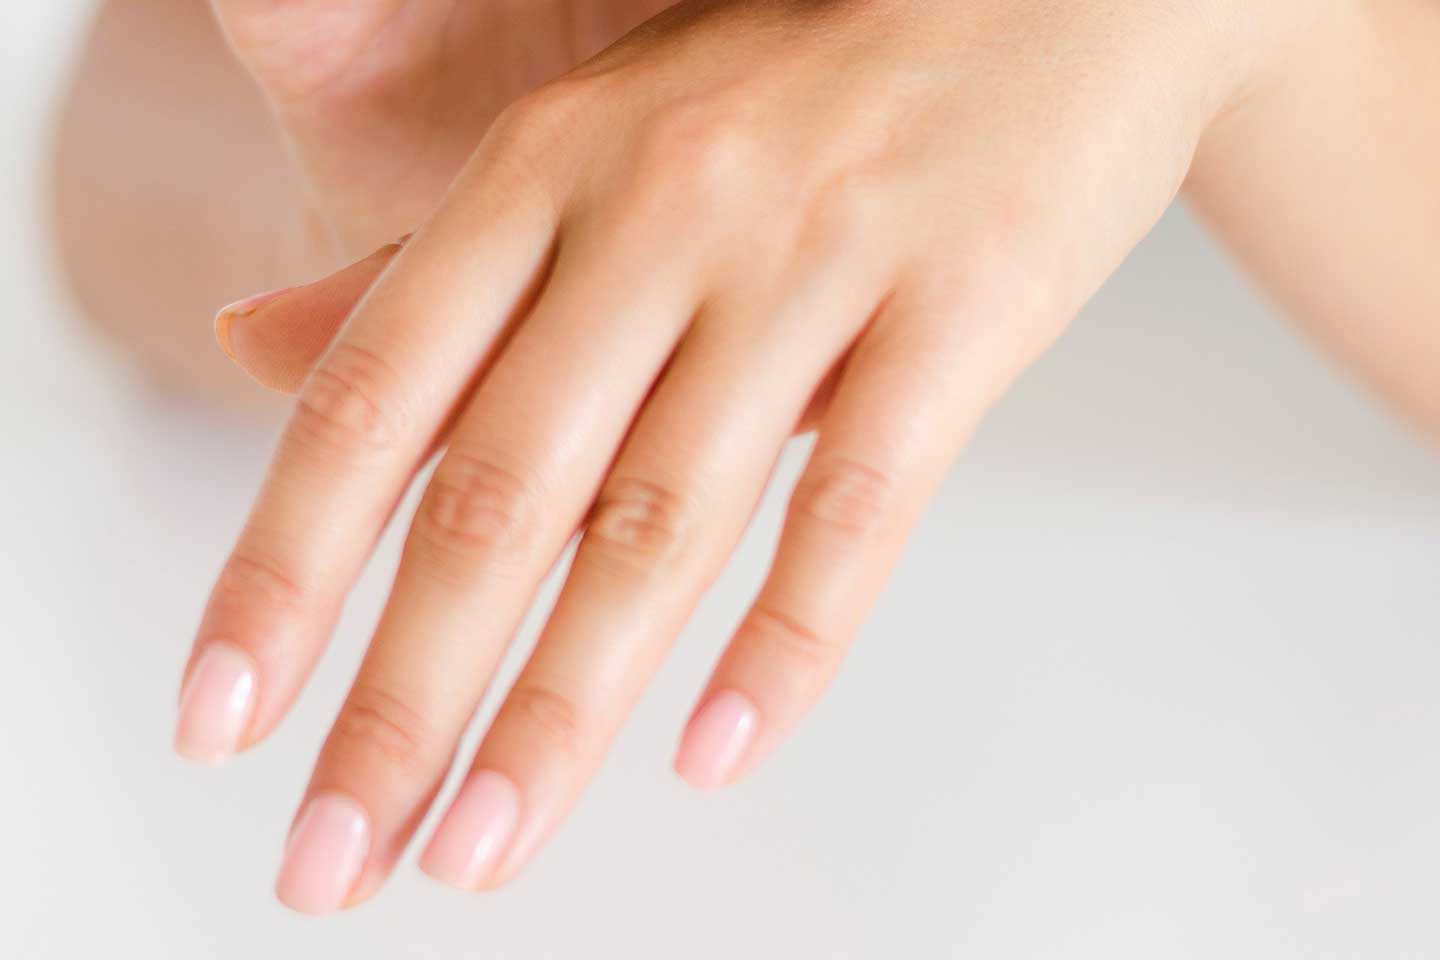 10-nails-1440x960px